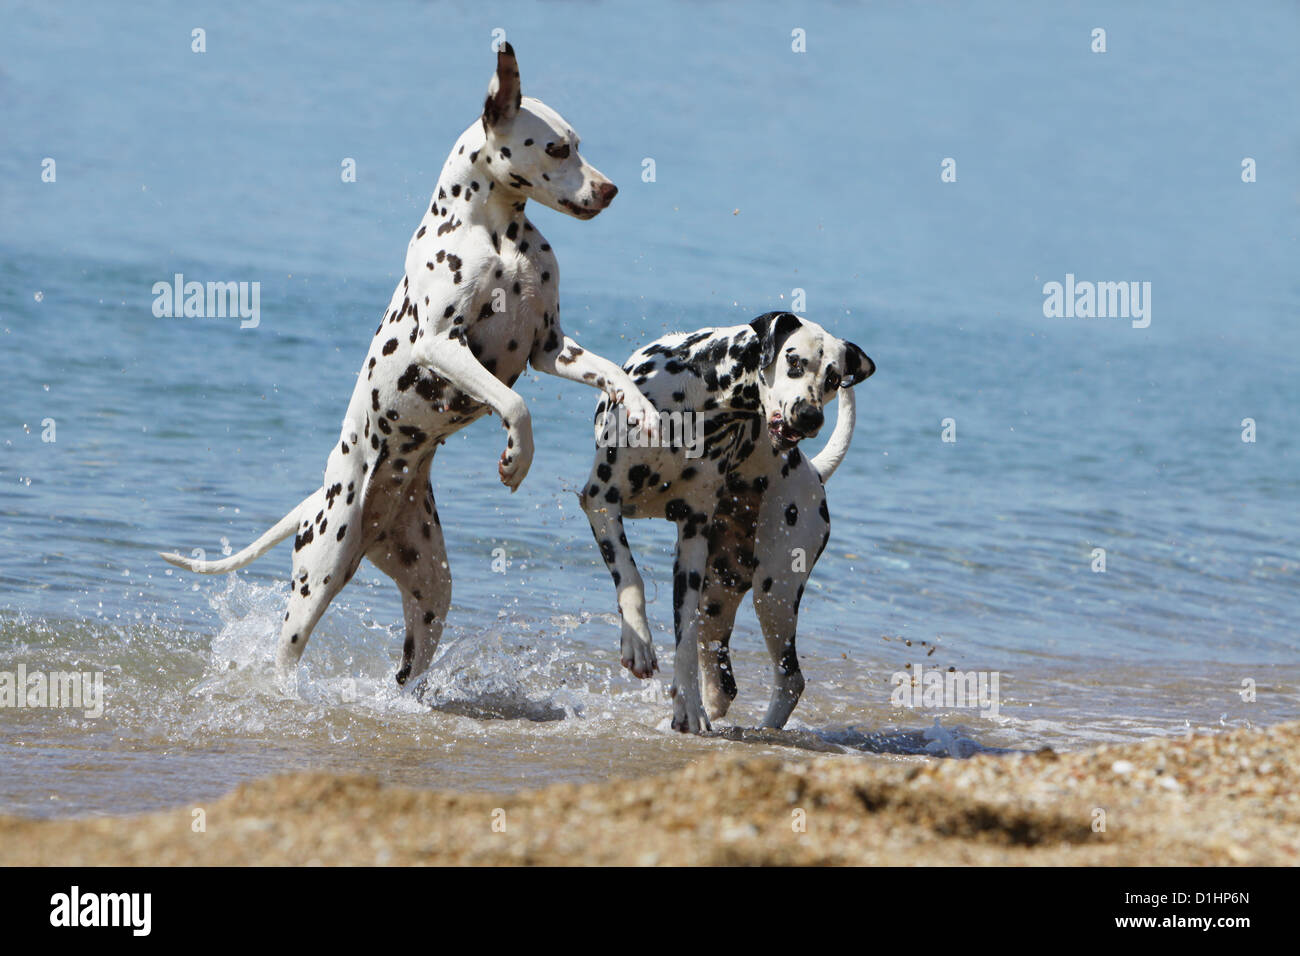 Dog Dalmatian / Dalmatiner / Dalmatien two adults playing in the sea Stock Photo